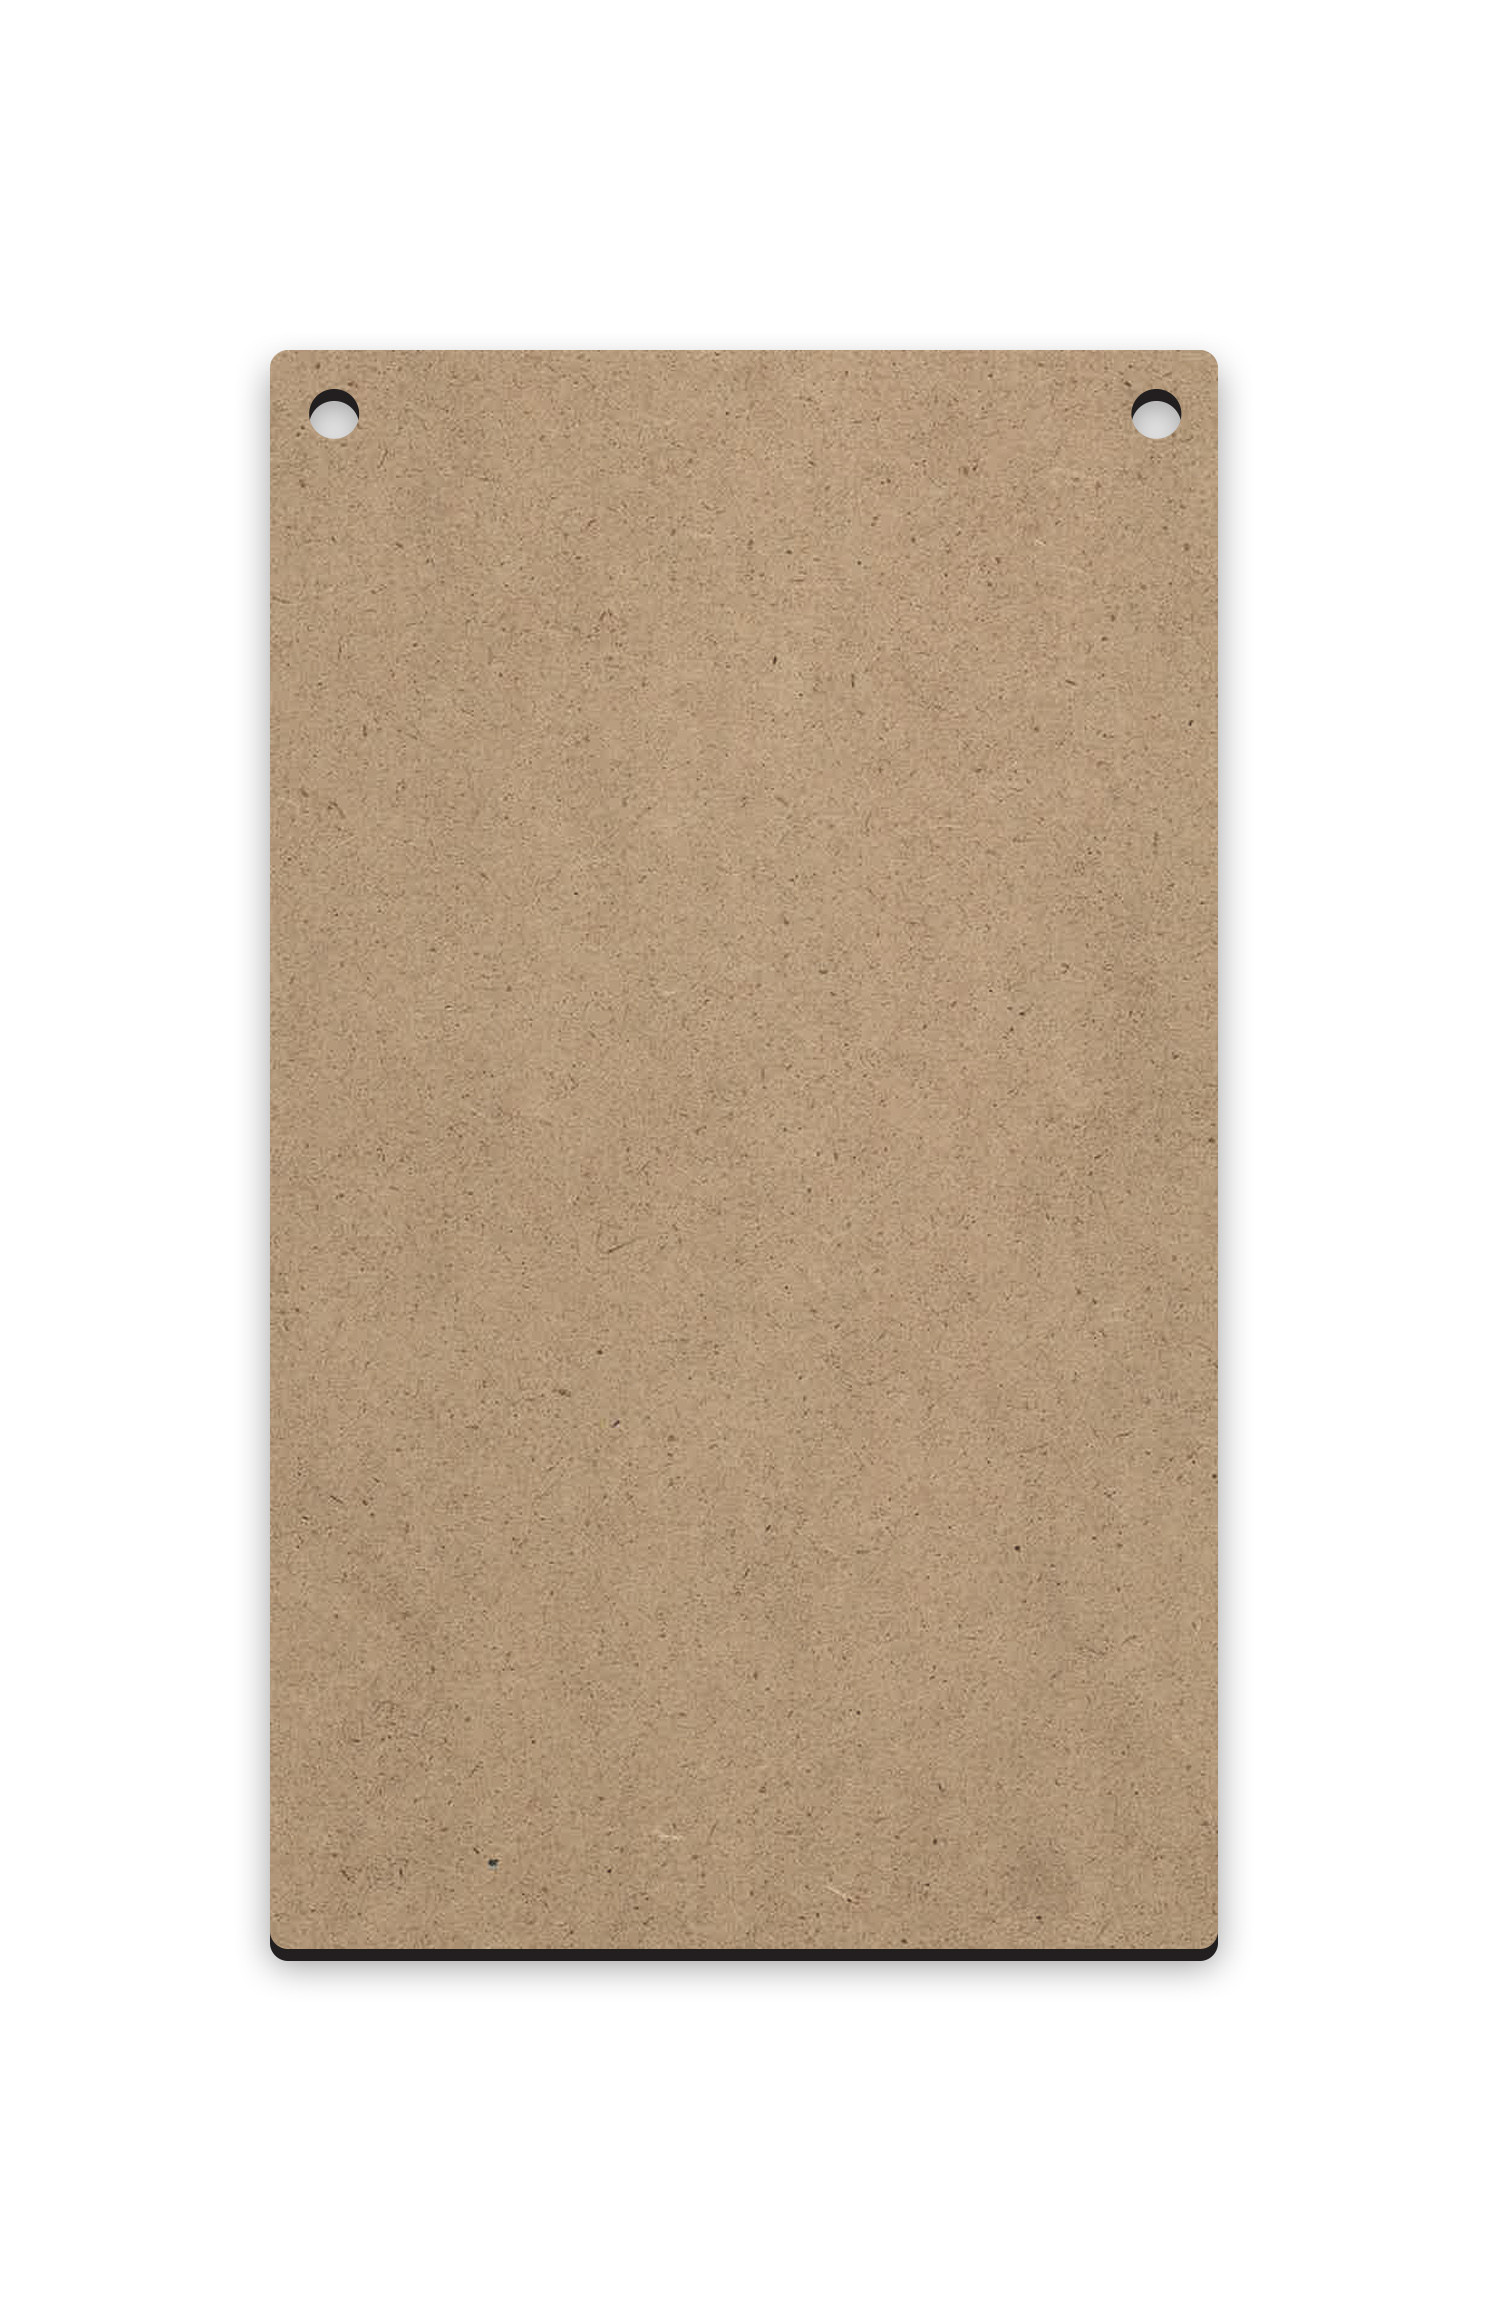 "Long Vertical Rectangle | Ornament Wood Mini Surface #15 | Size 2.6"" x 4.5"""